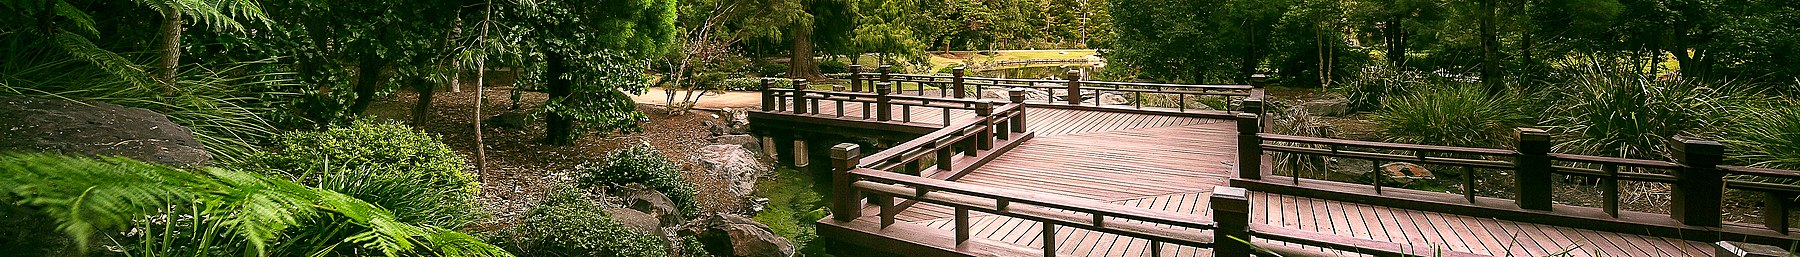 Nerima Gardens Boardwalk pagebanner.jpg